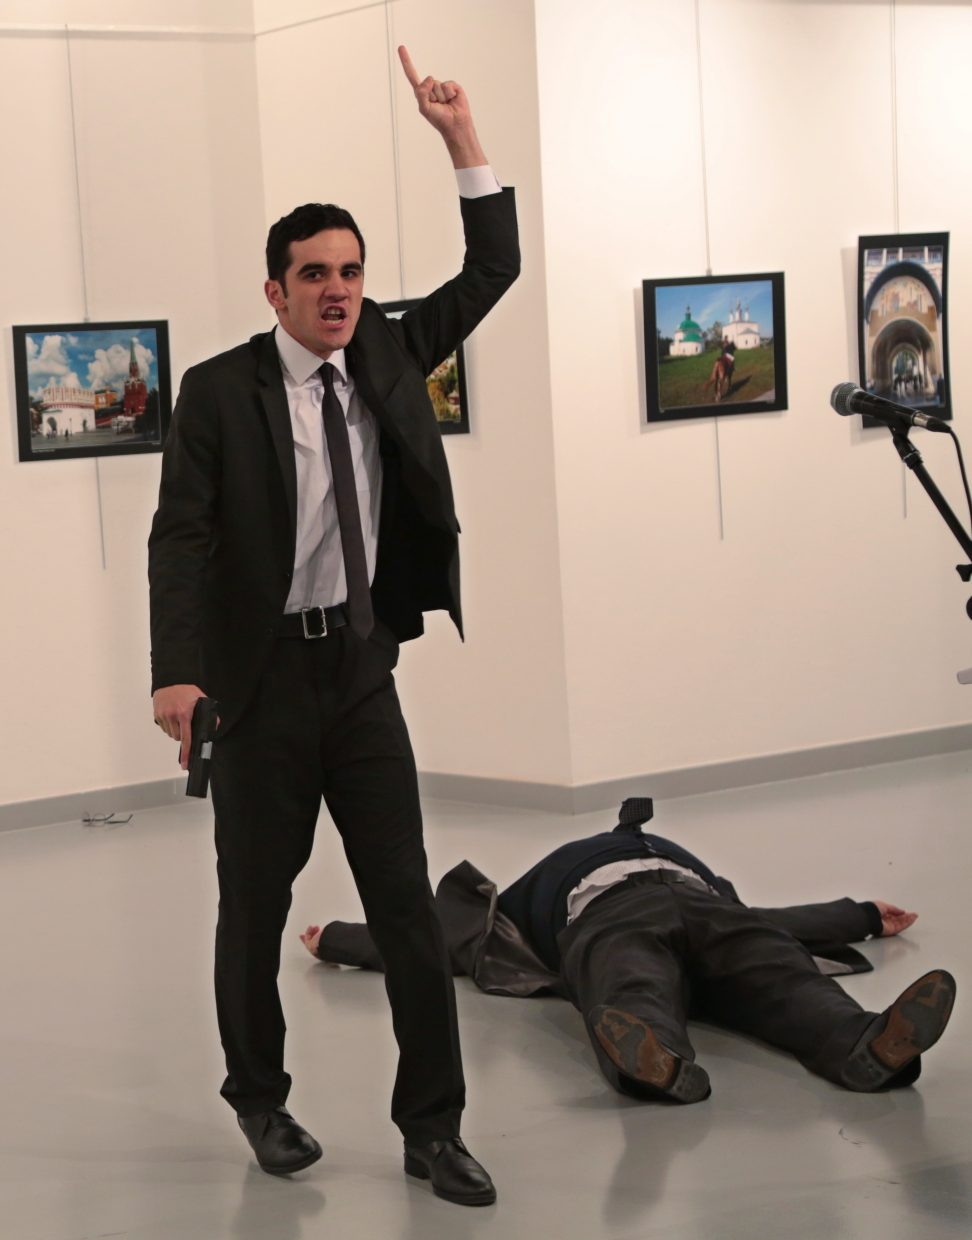 A man gestures after shooting Andrei Karlov, the Russian Ambassador to Turkey, on the floor, at a photo gallery in Ankara, Turkey, Monday, Dec. 19, 2016. The ambassador's condition wasn't immediately known.